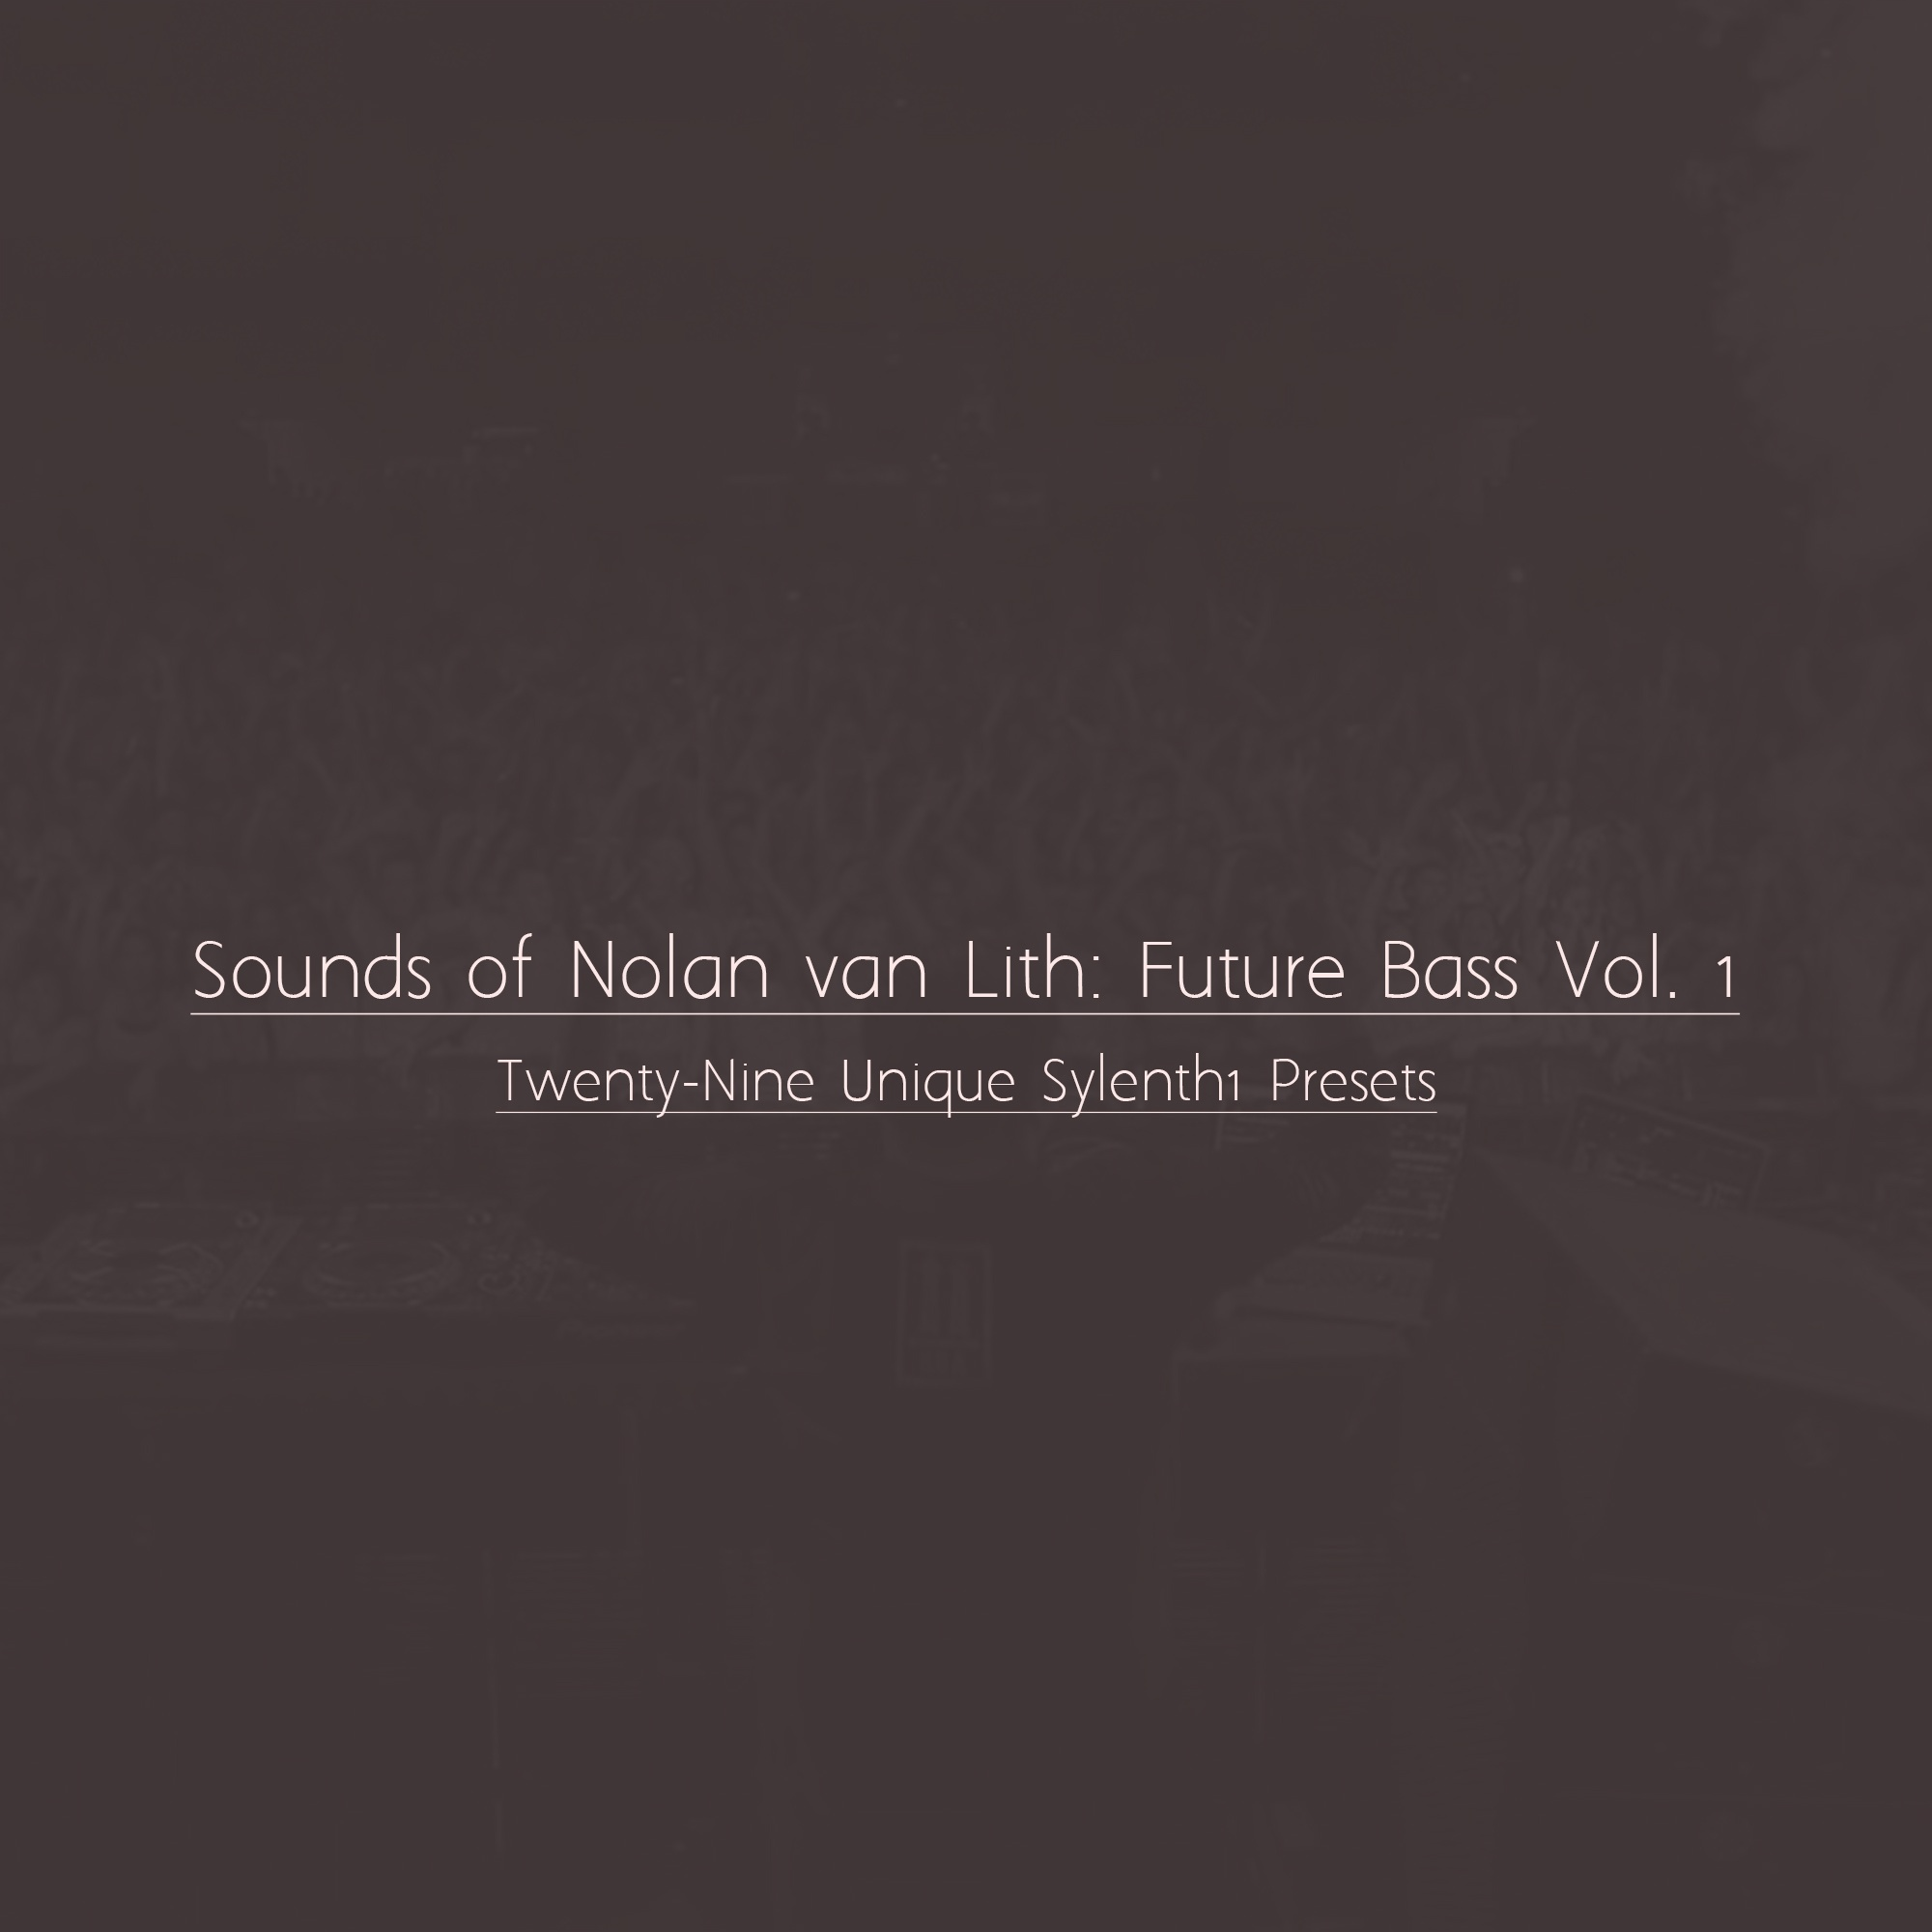 Sounds Of Nolan van Lith - Future Bass Vol 1. 29 Unique Sylenth 1 Presets